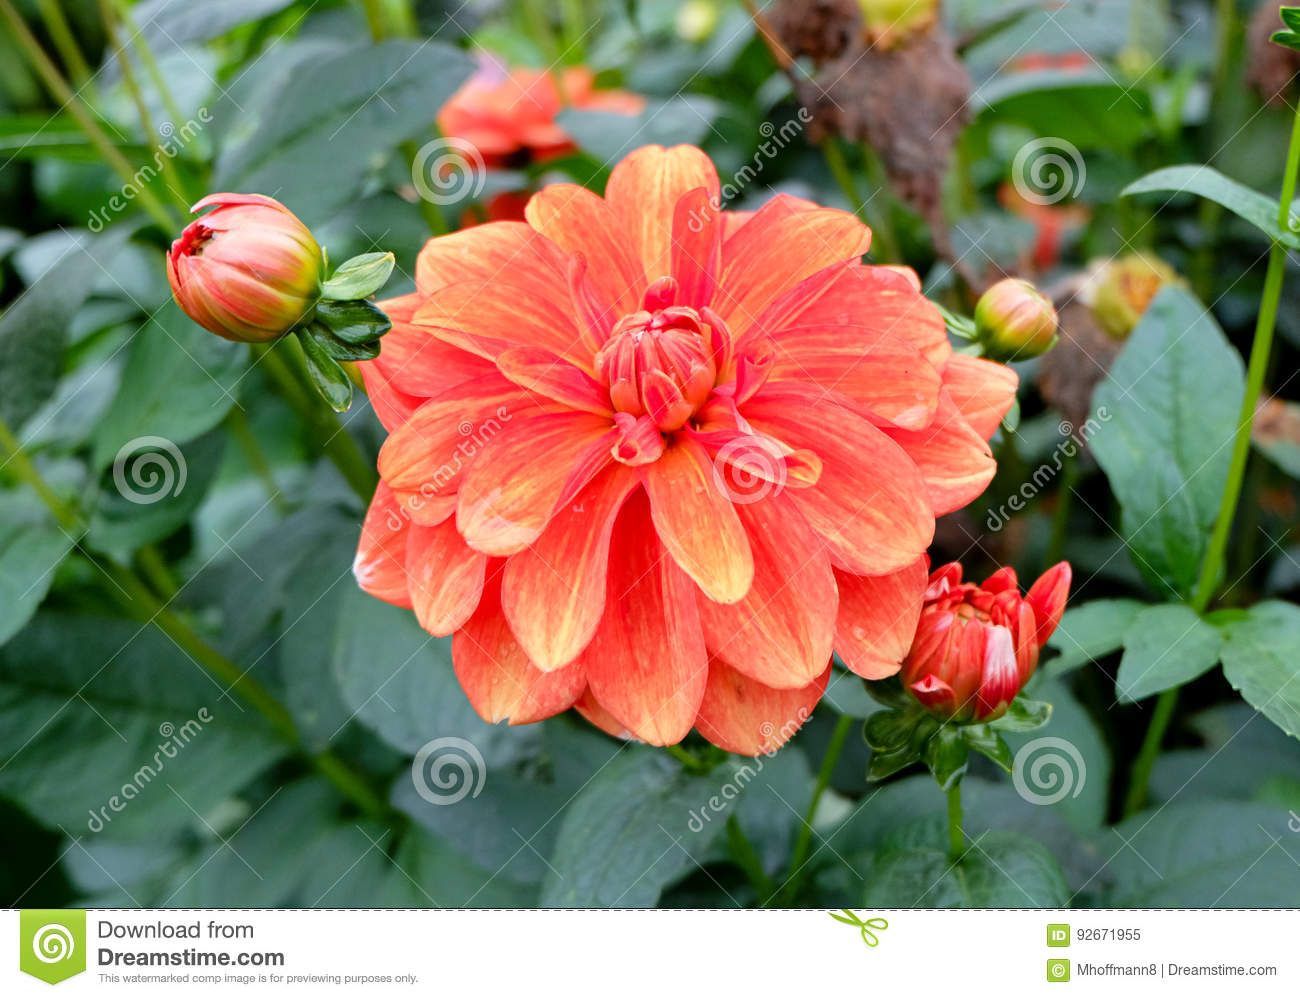 A Multi Colored Dahlia Dalia Flower In A Garden Fully Blooming With